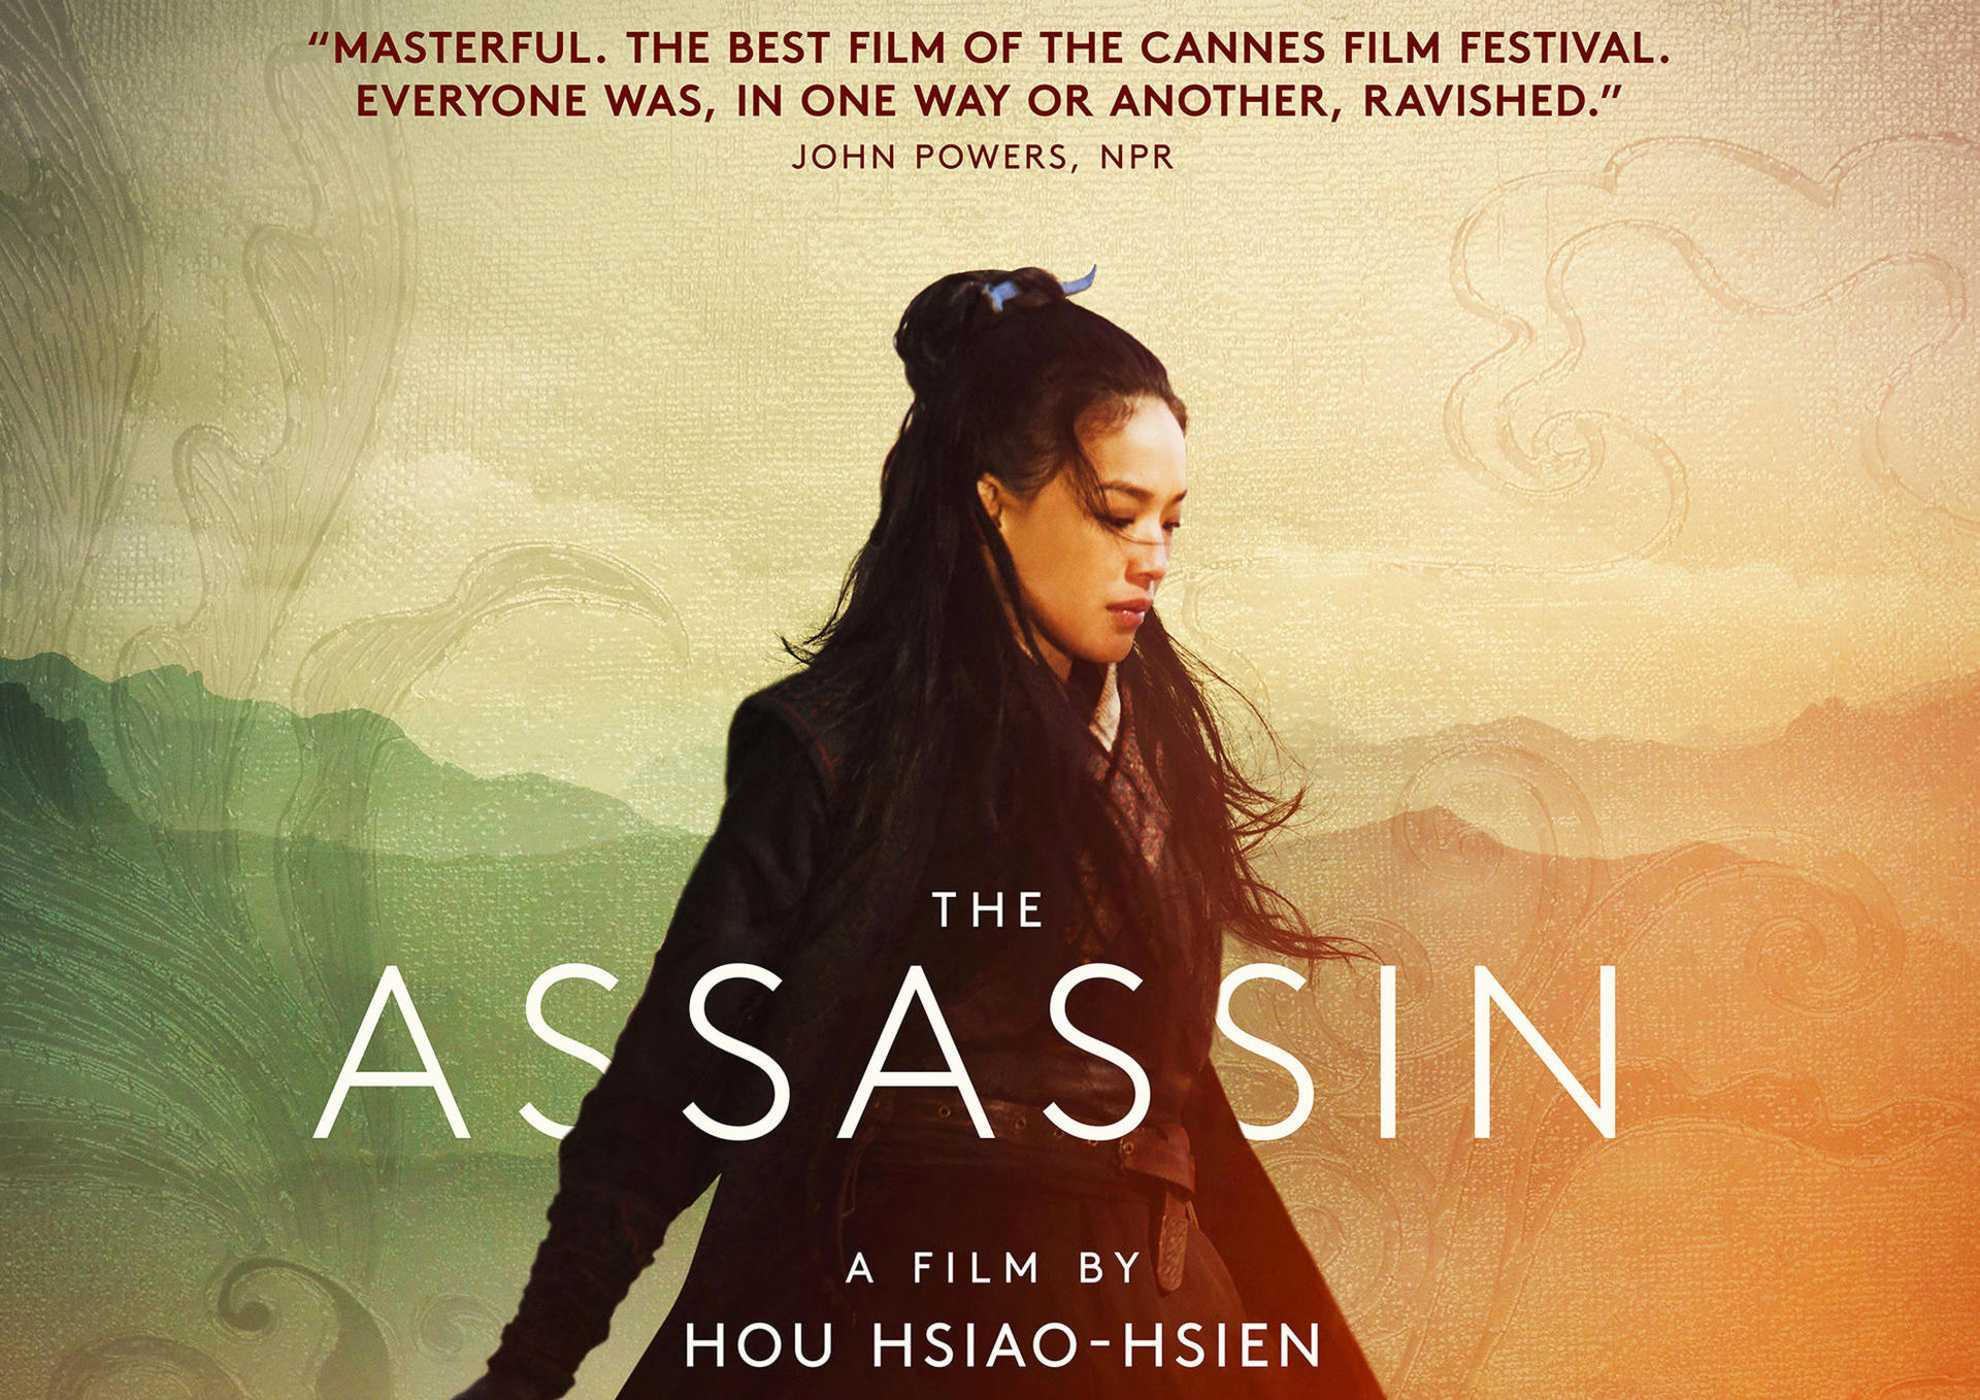 The Assassin cover